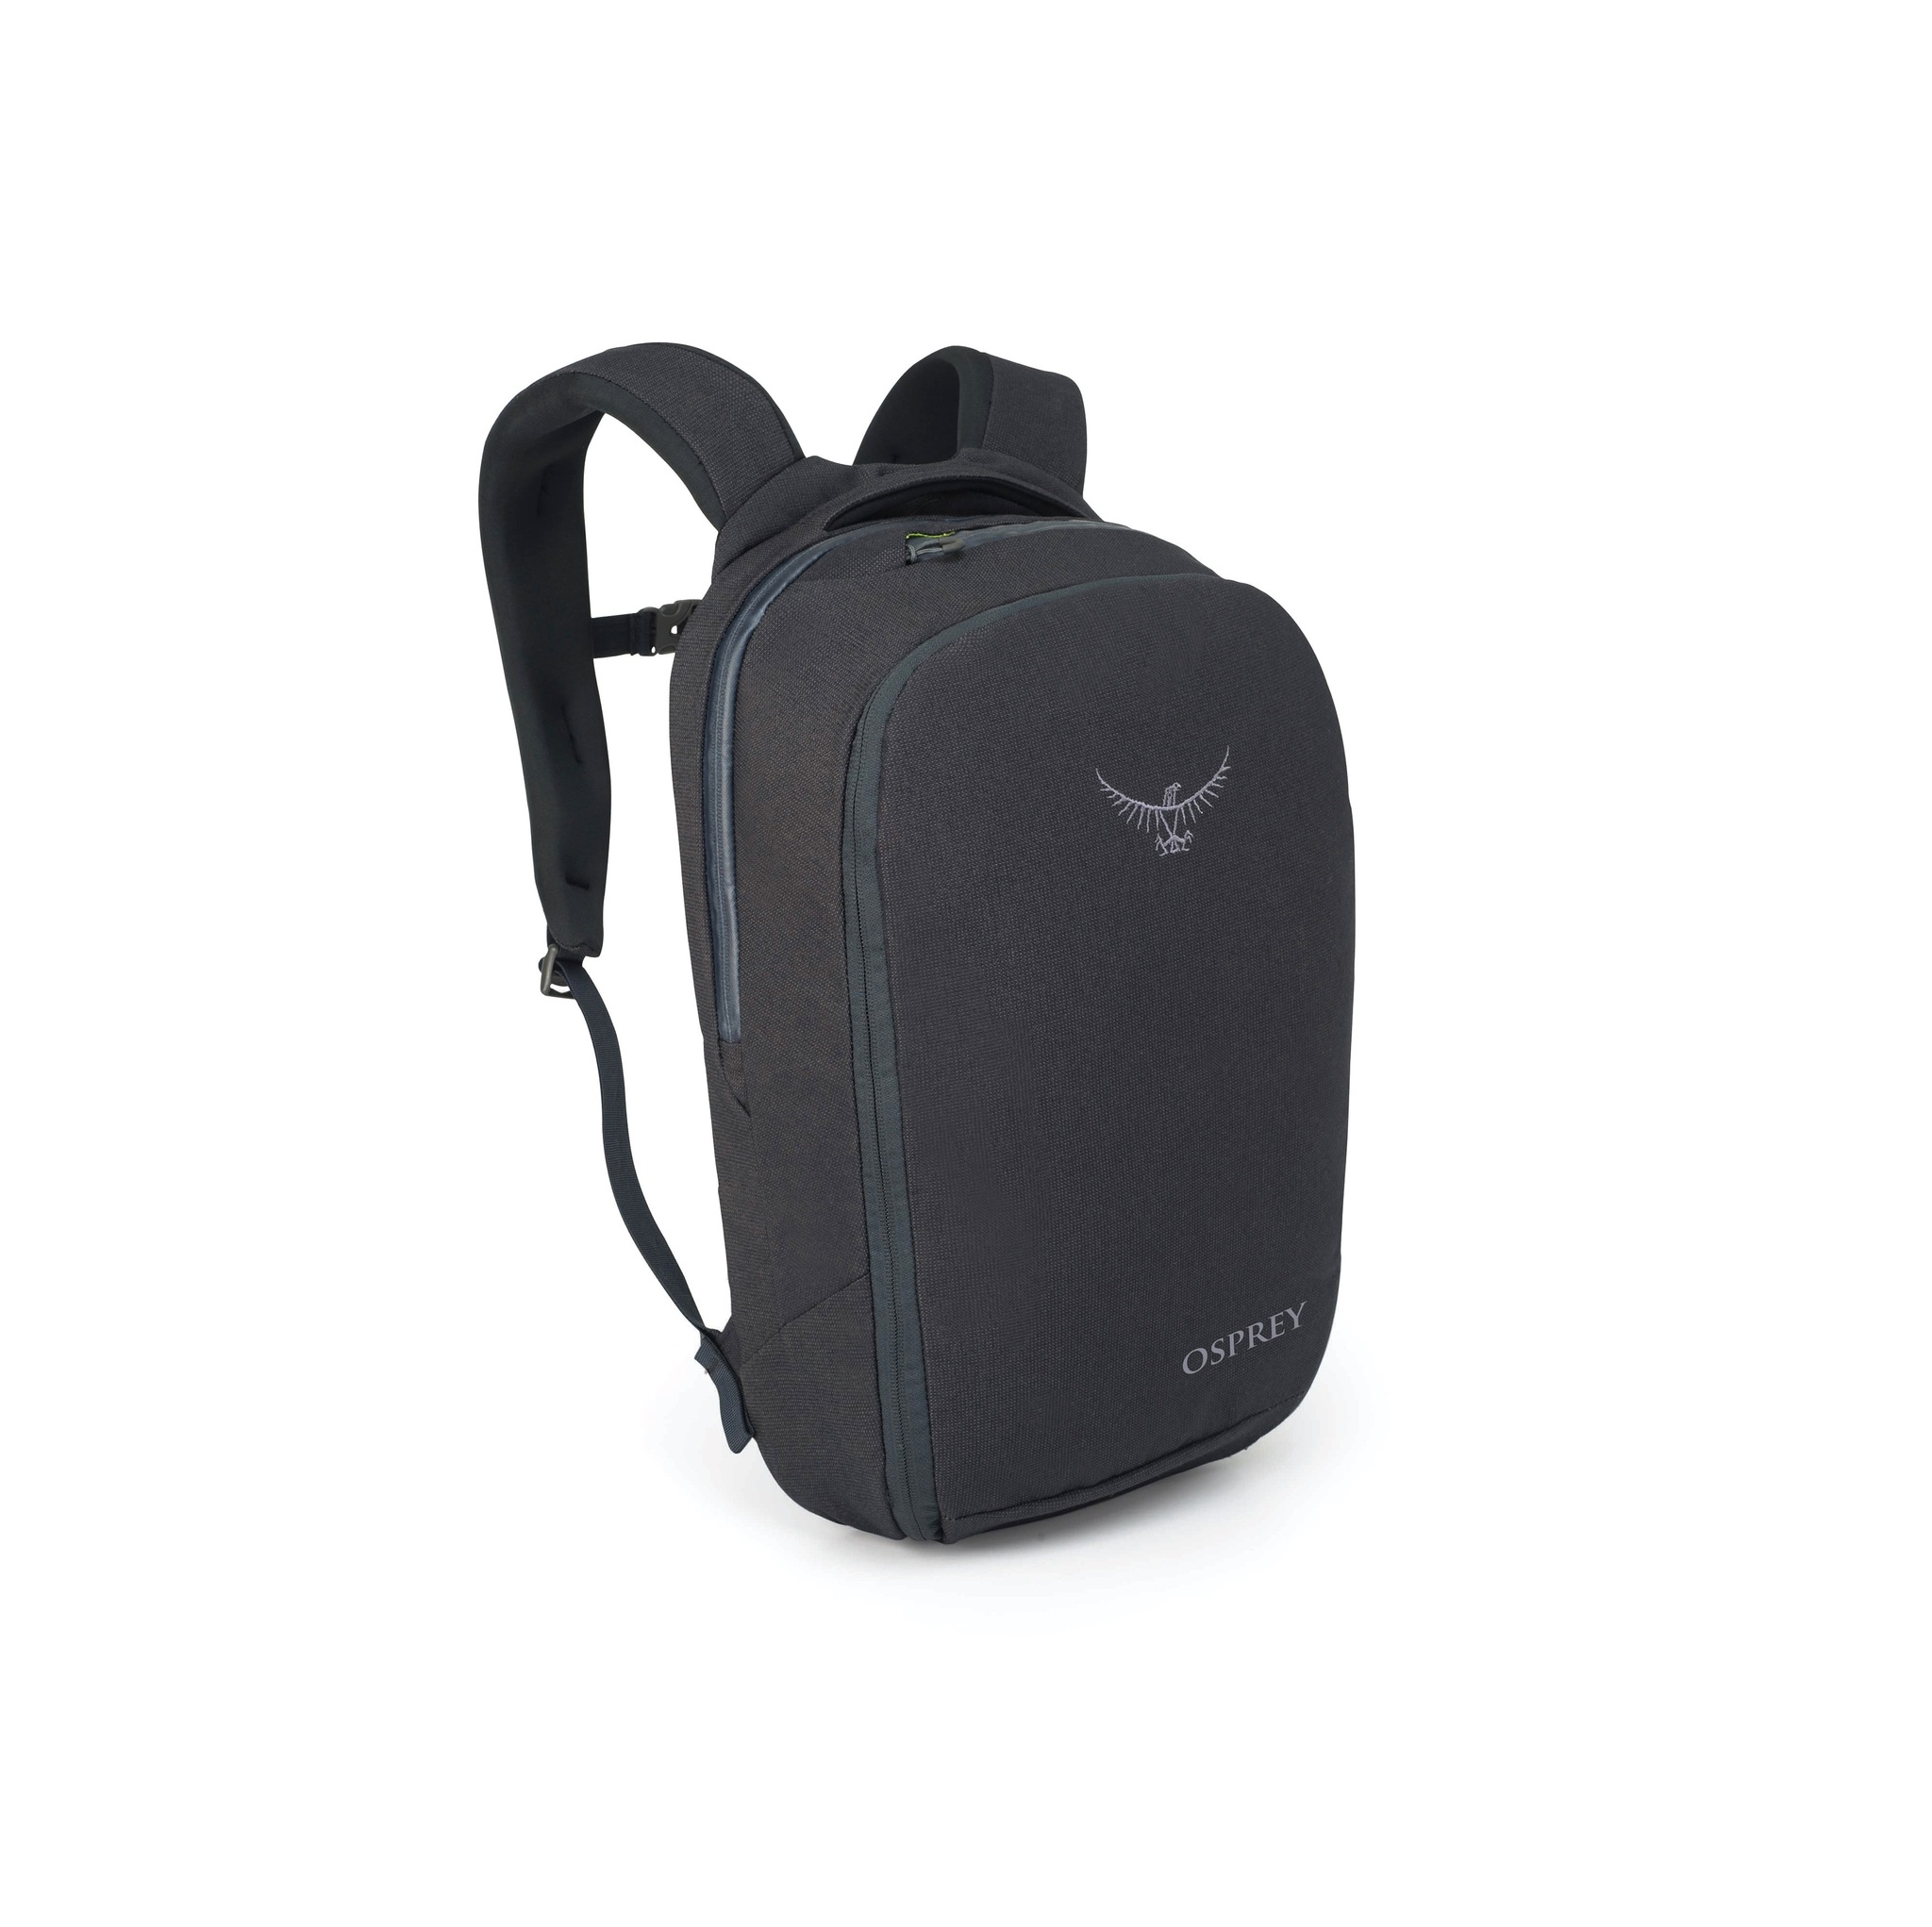 Городские рюкзаки Рюкзак городской Osprey Cyber Port Black Pepper backpack-osprey-cyber-port-black-pepper-o-sLarge.jpg